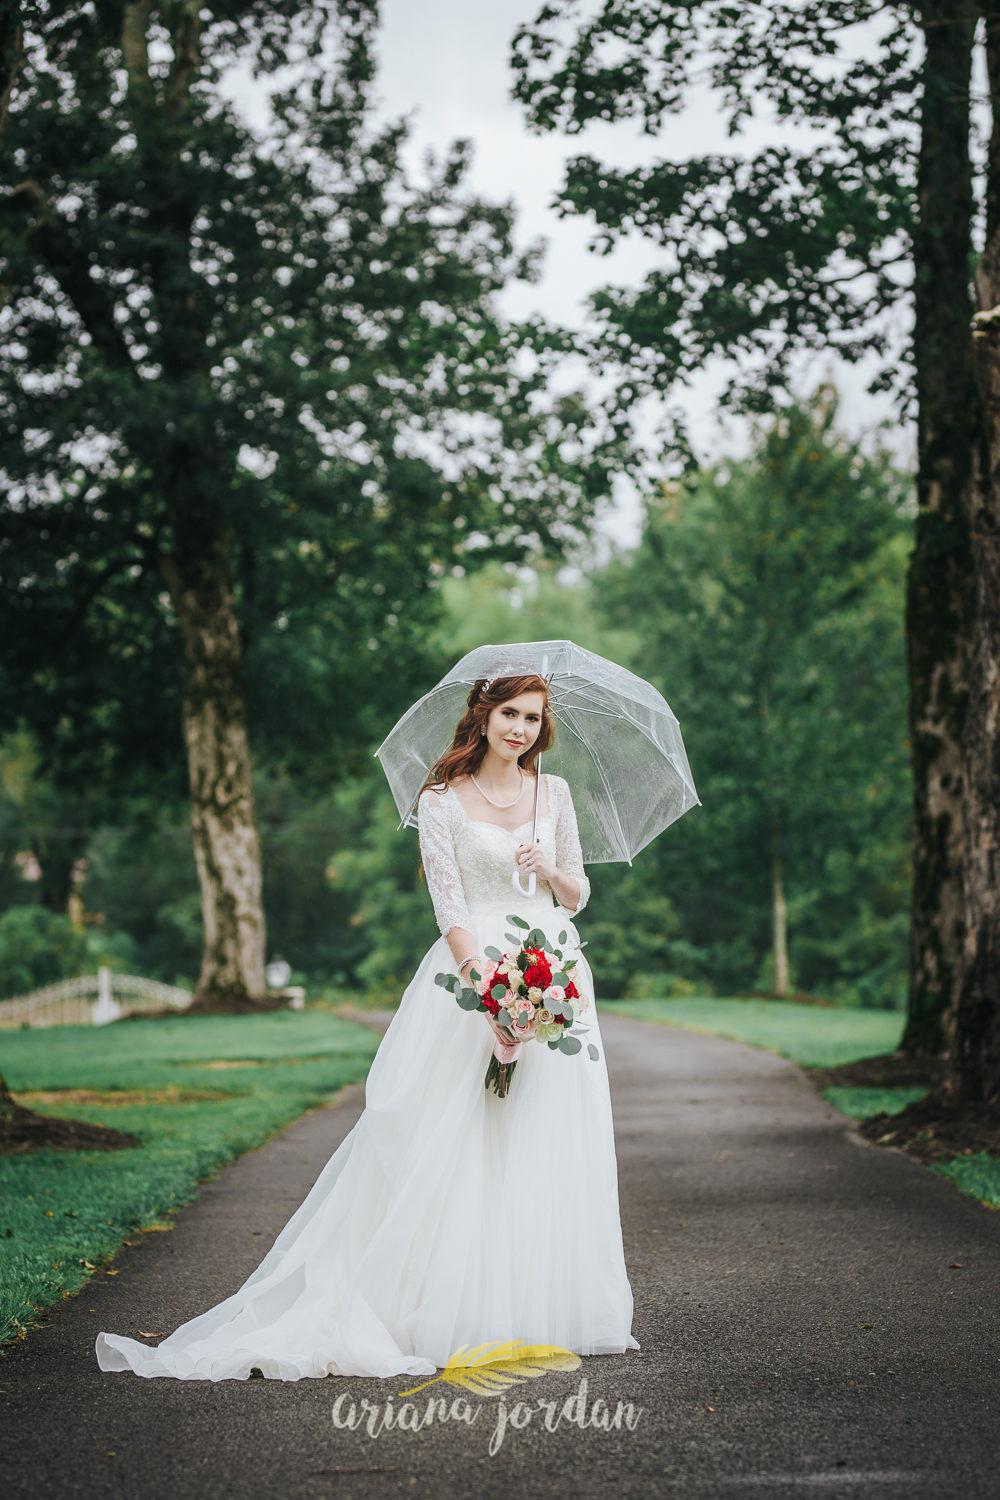 111 - Ariana Jordan - Kentucky Wedding Photographer - Landon & Tabitha_.jpg